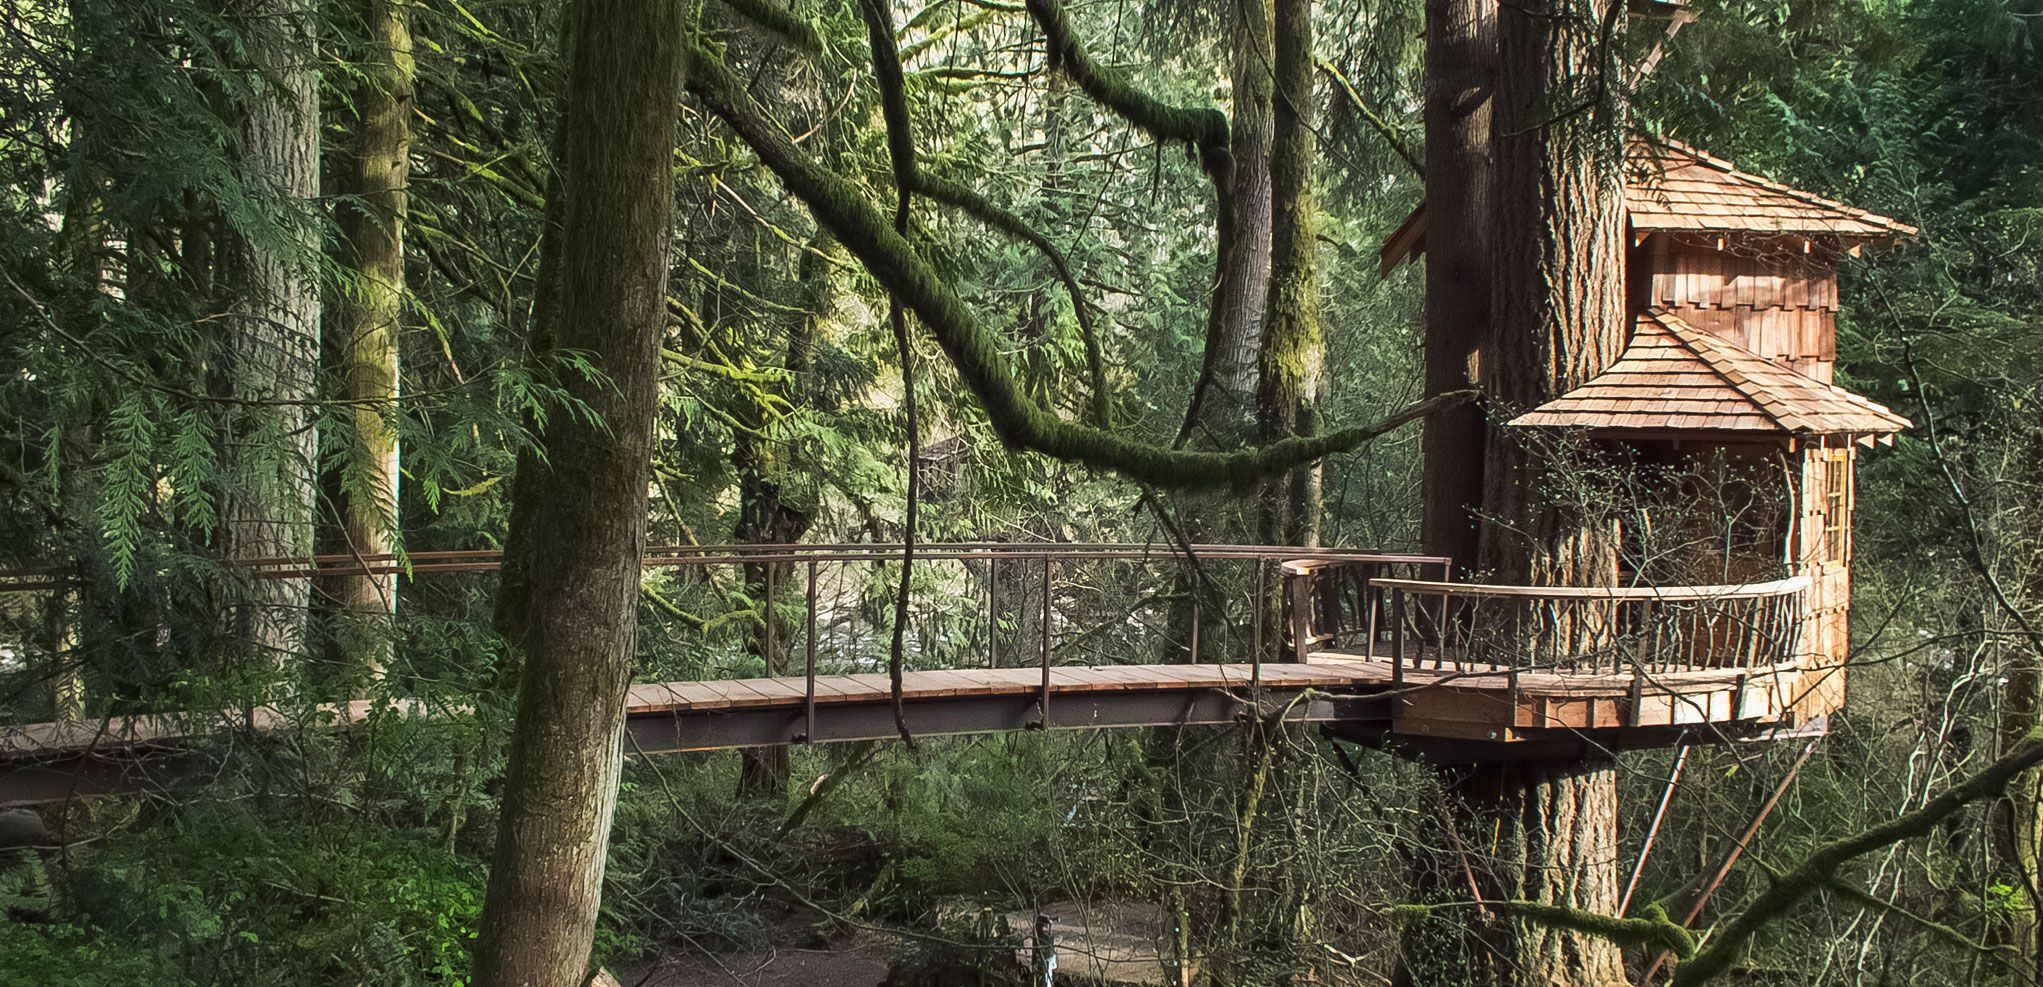 TreeHouse Point's lodging options offers an opportunity